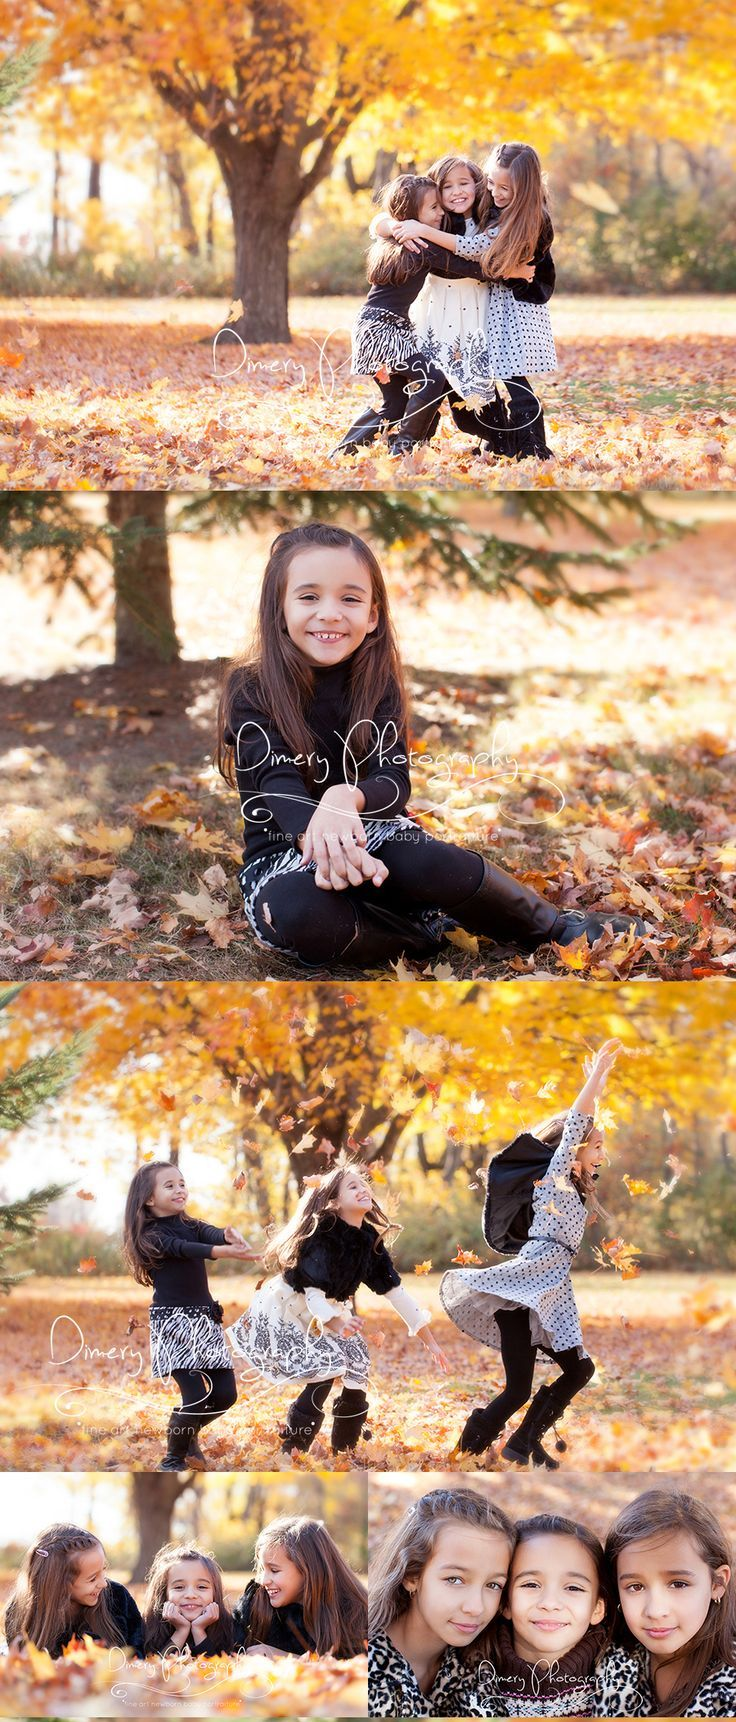 The best ideas for an autumn photo shoot in nature 40